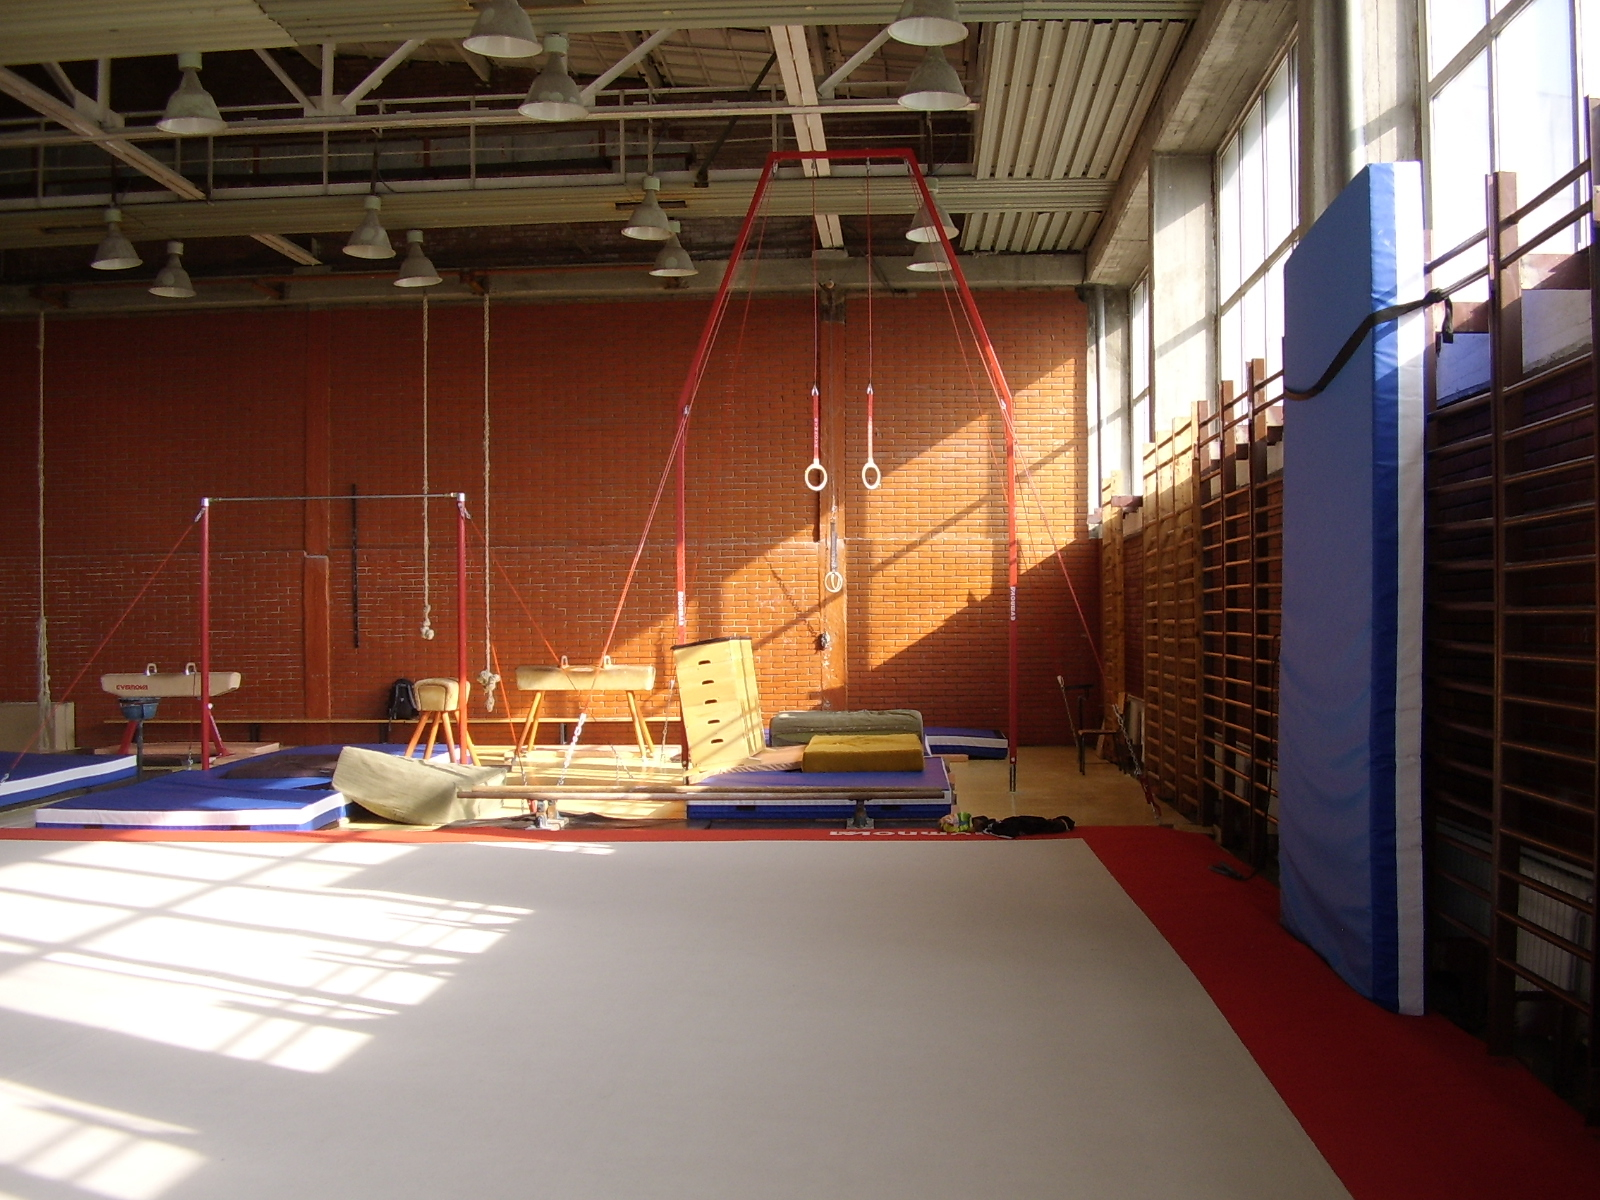 Bruno Grandi Gymnastics Hall at the NSA